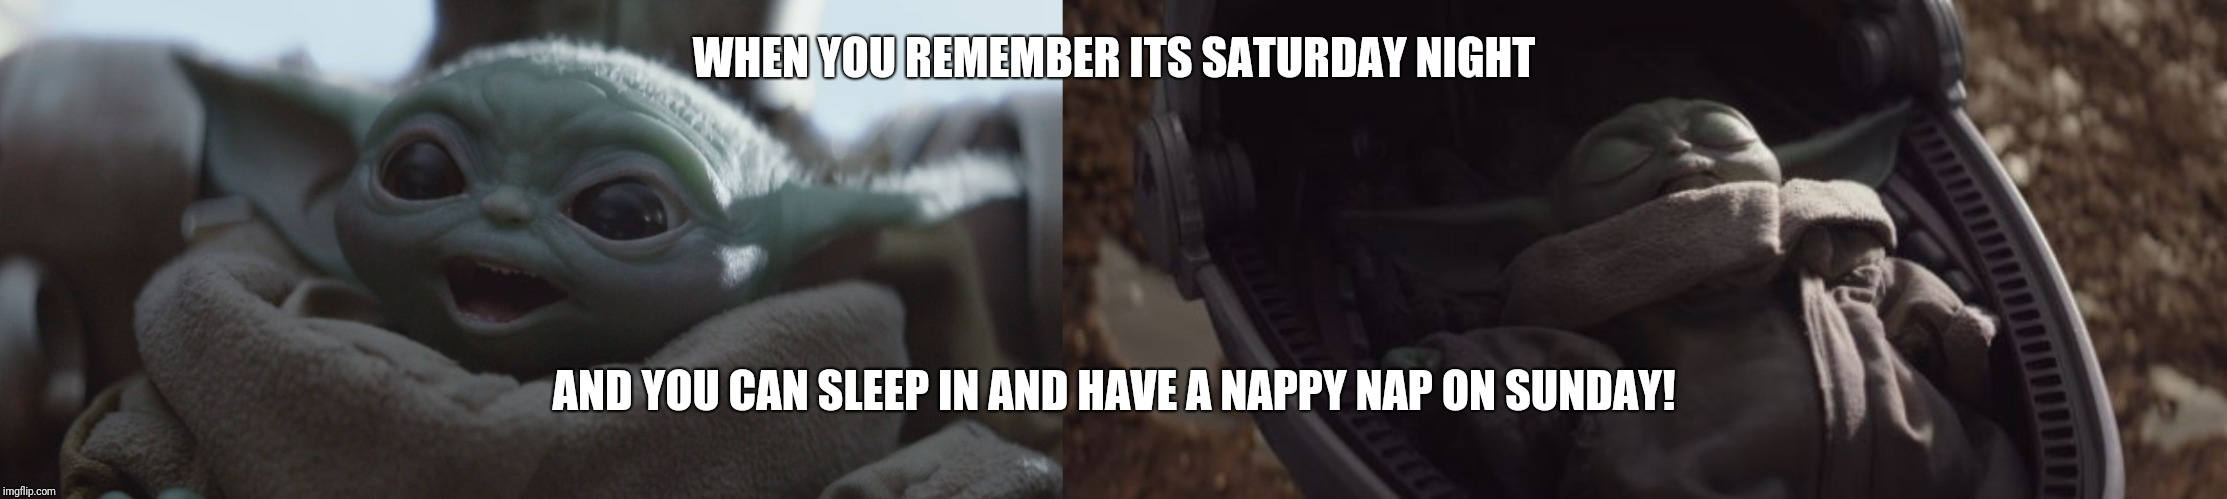 WHEN YOU REMEMBER ITS SATURDAY NIGHT; AND YOU CAN SLEEP IN AND HAVE A NAPPY NAP ON SUNDAY! | image tagged in baby yoda sleeping,baby yoda happy | made w/ Imgflip meme maker